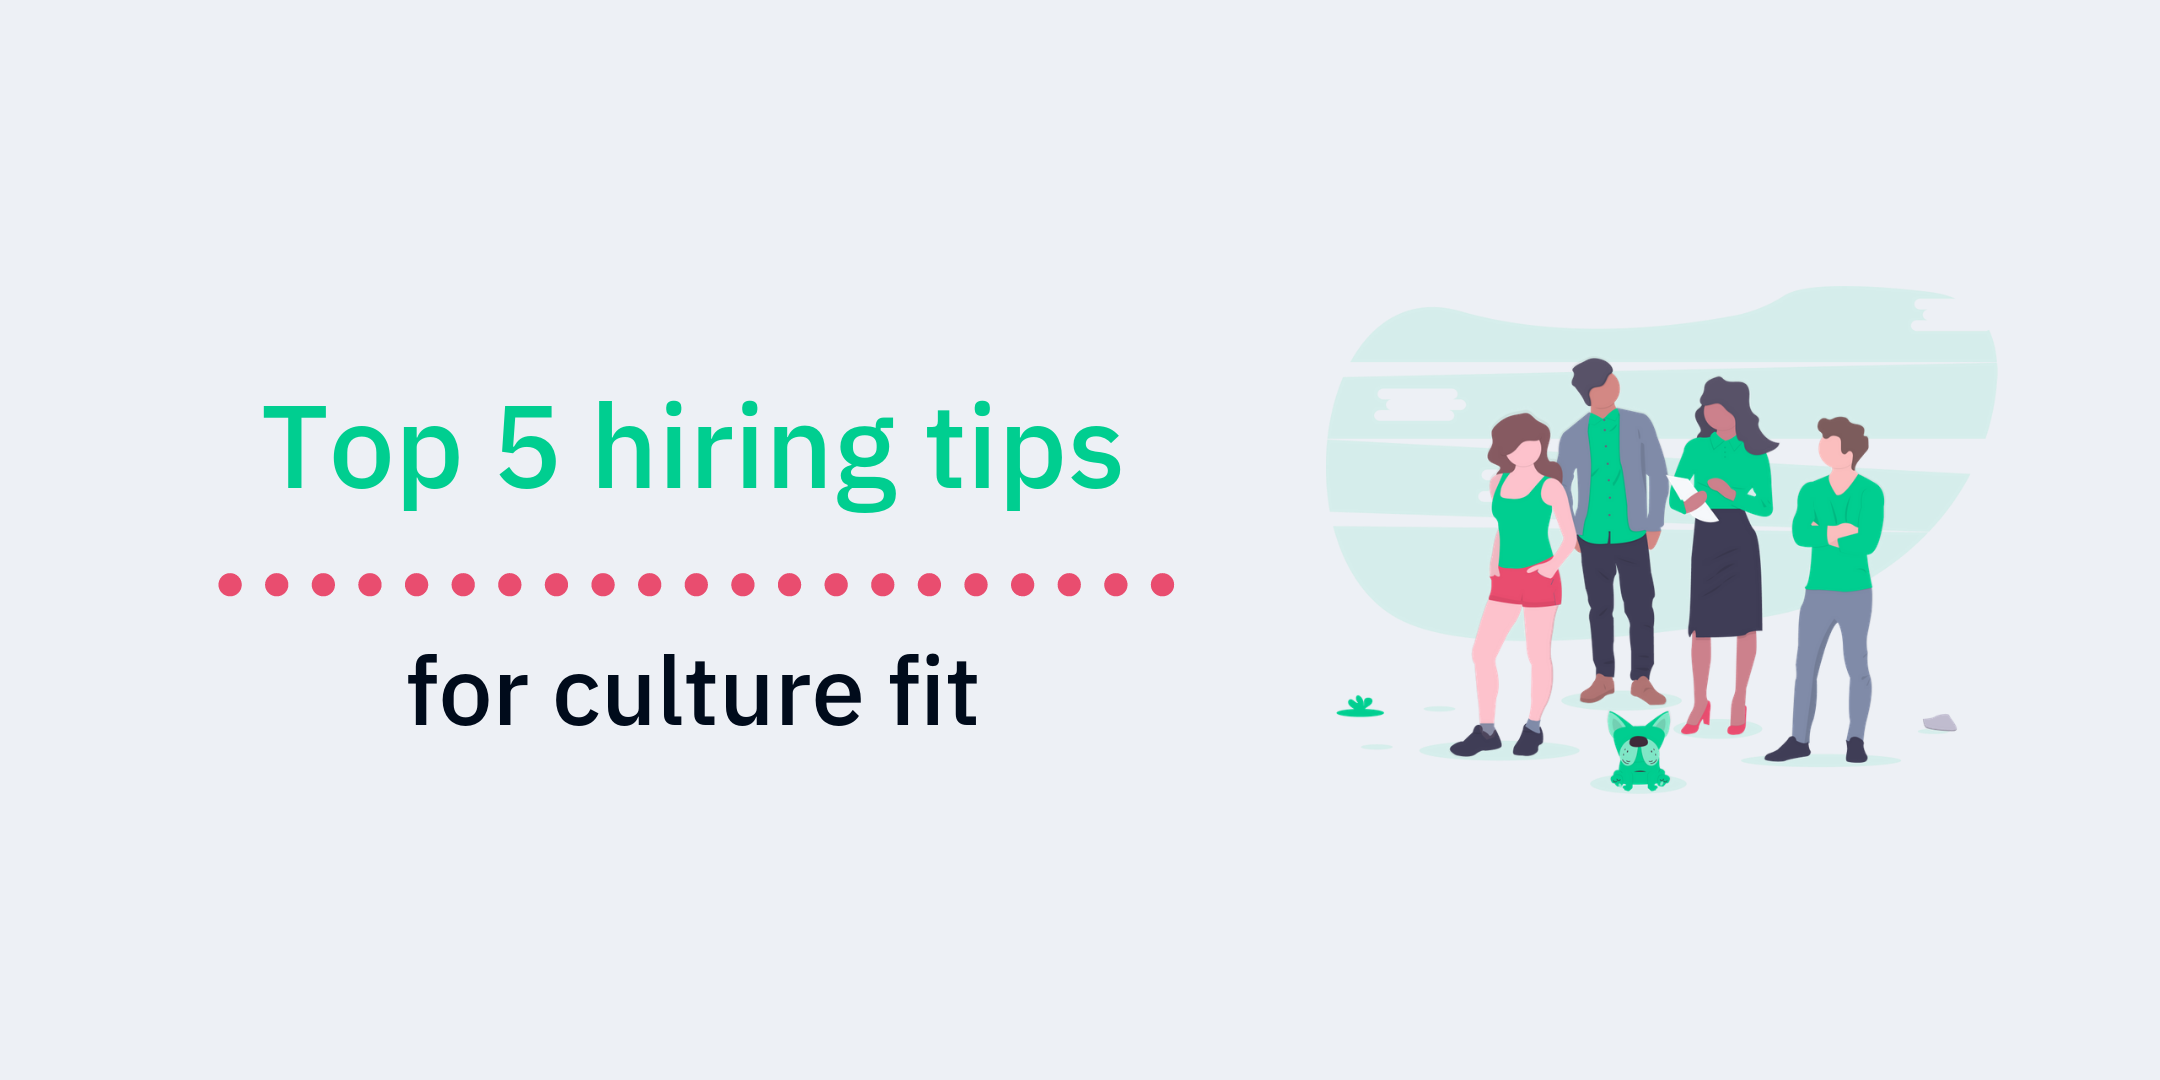 Top 5 hiring tips for culture-fit